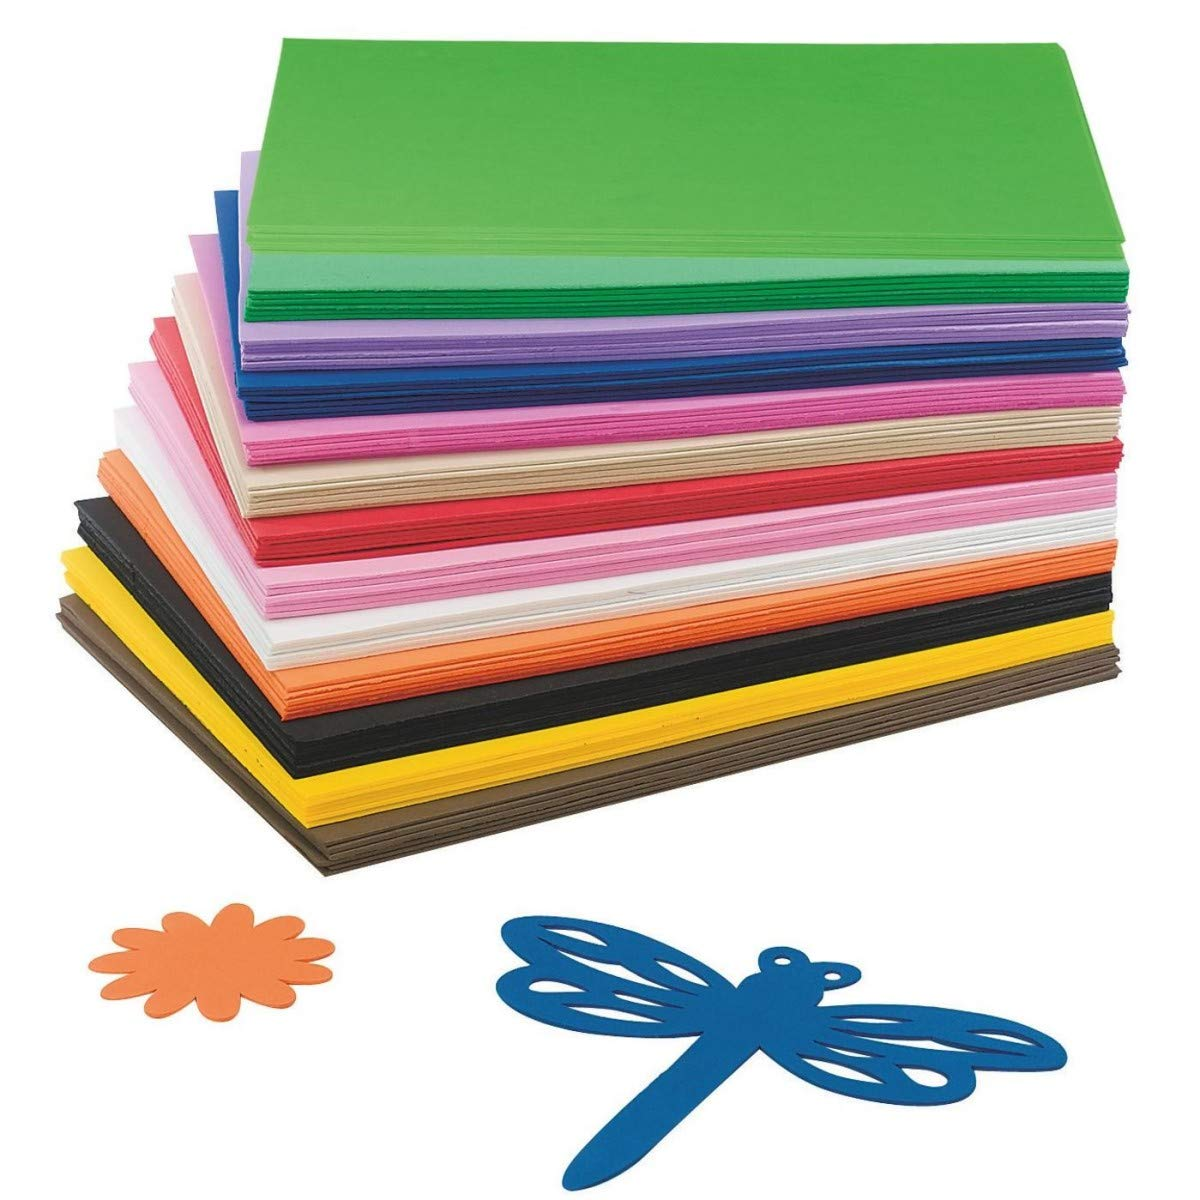 S&S Worldwide AX822 EVA Foam Sheet Assortment (Pack of 78) S&S Worldwide Education